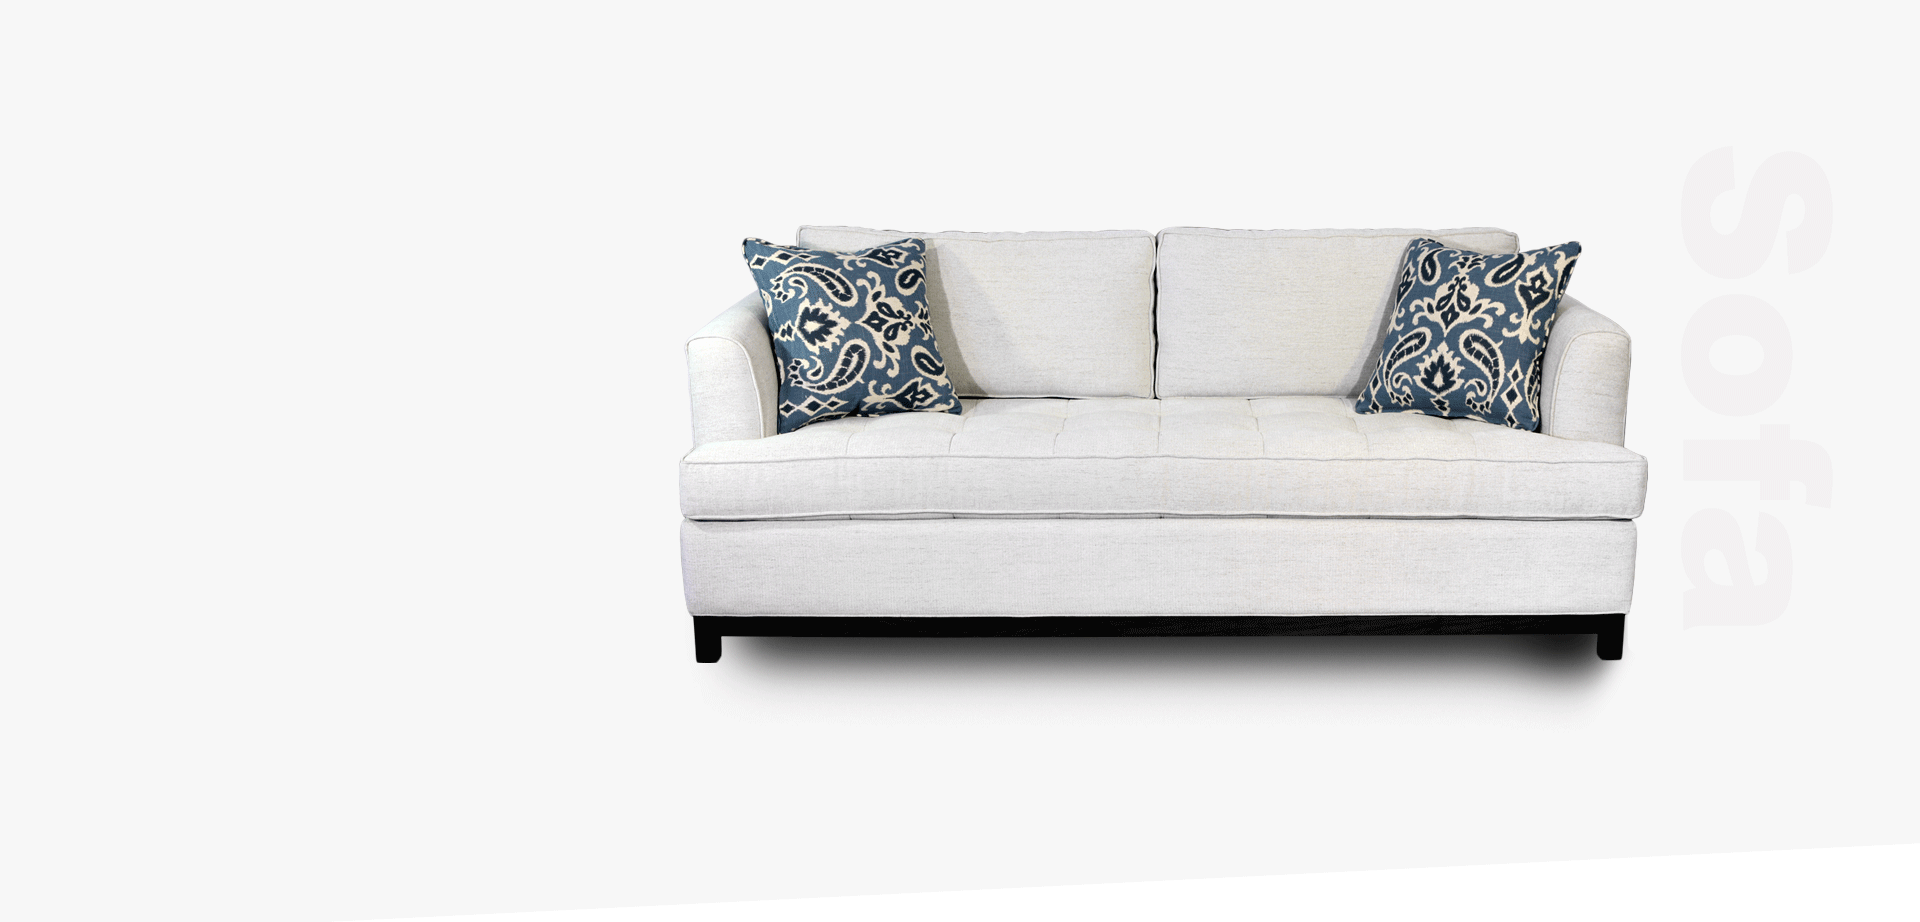 Solid Wood Frame Upholstered sofa